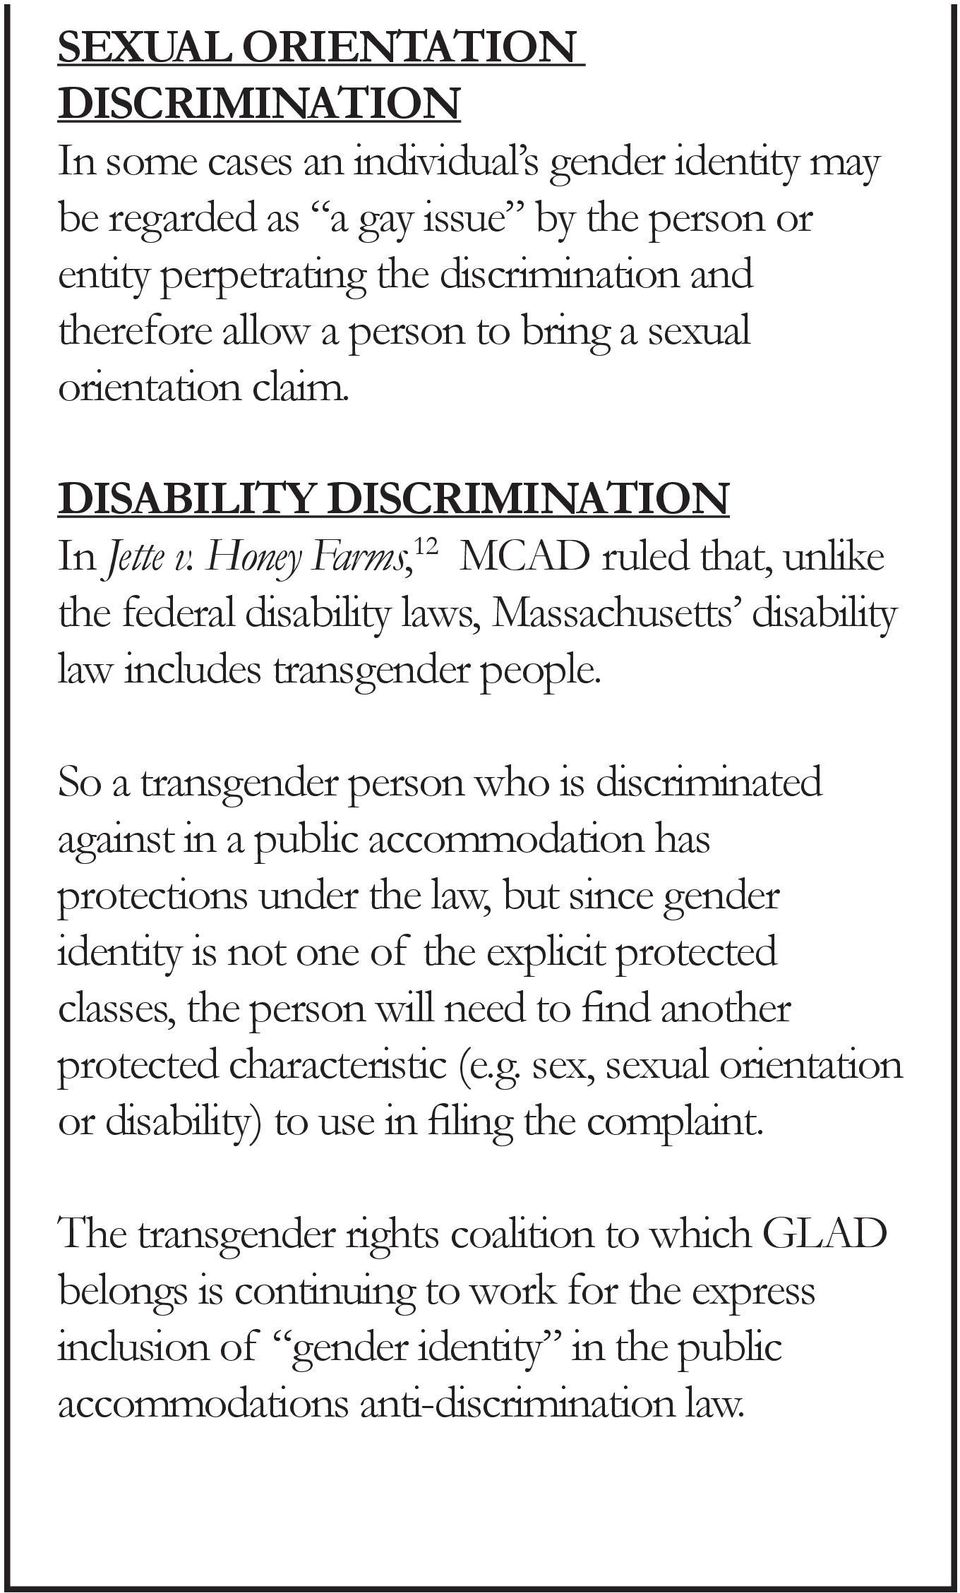 So a transgender person who is discriminated against in a public accommodation has protections under the law, but since gender identity is not one of the explicit protected classes, the person will